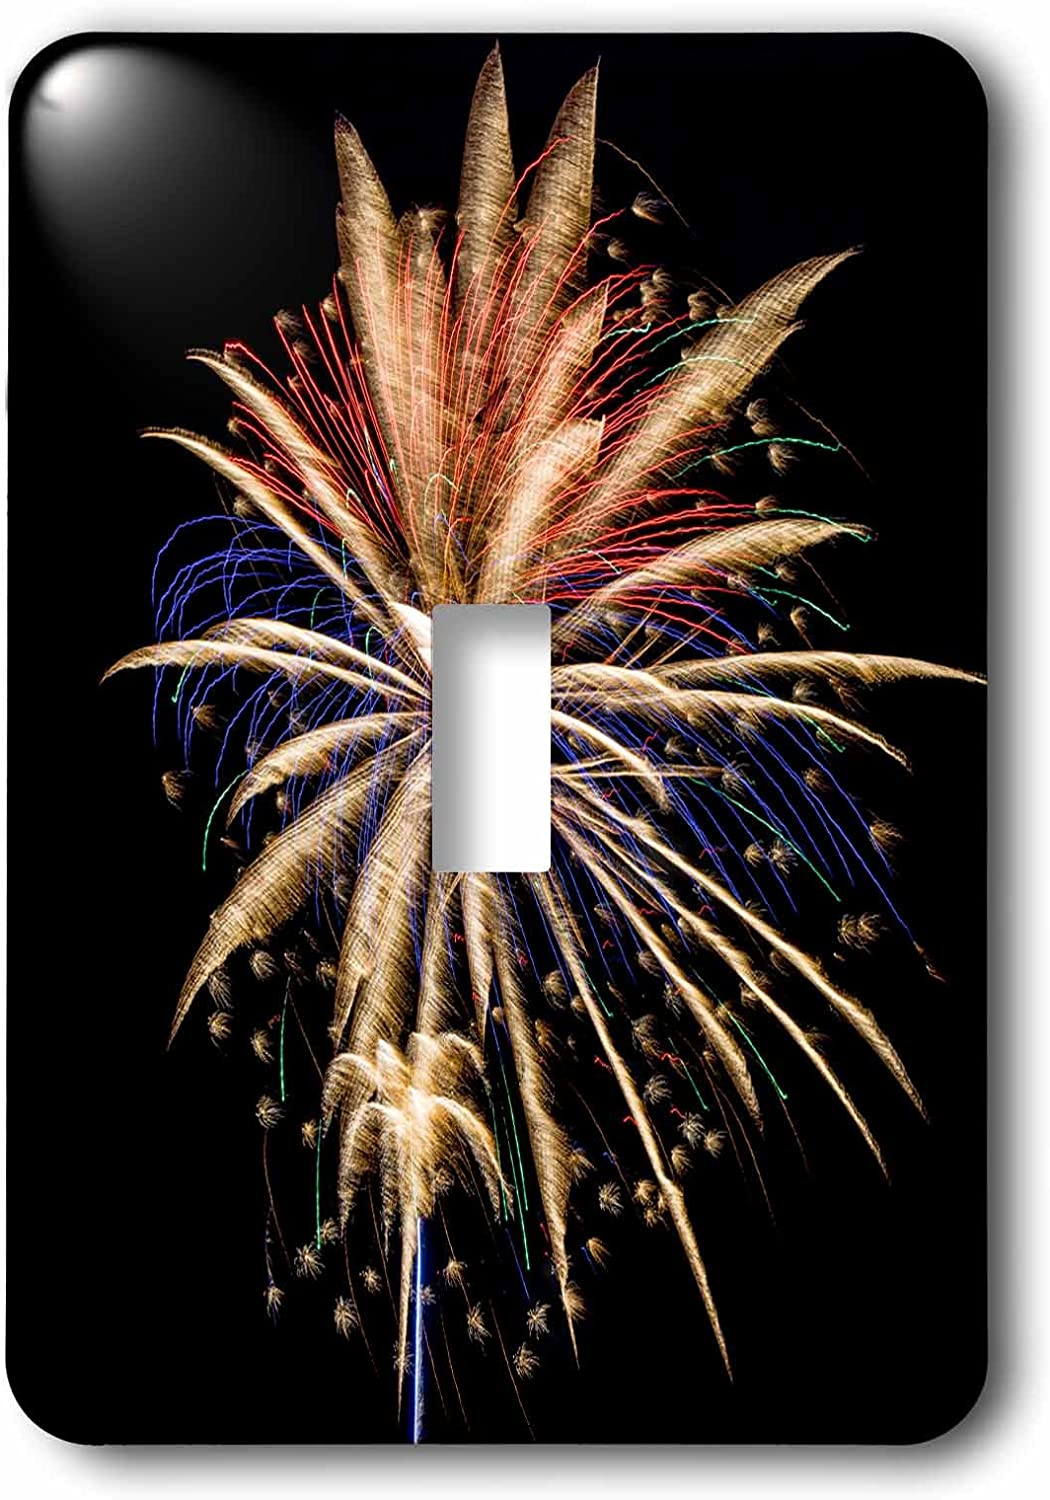 3drose Lsp 190709 1 Use Colorado Frisco Dillon Reservoir Fireworks Display July Thz Toggle Switch Multicolor